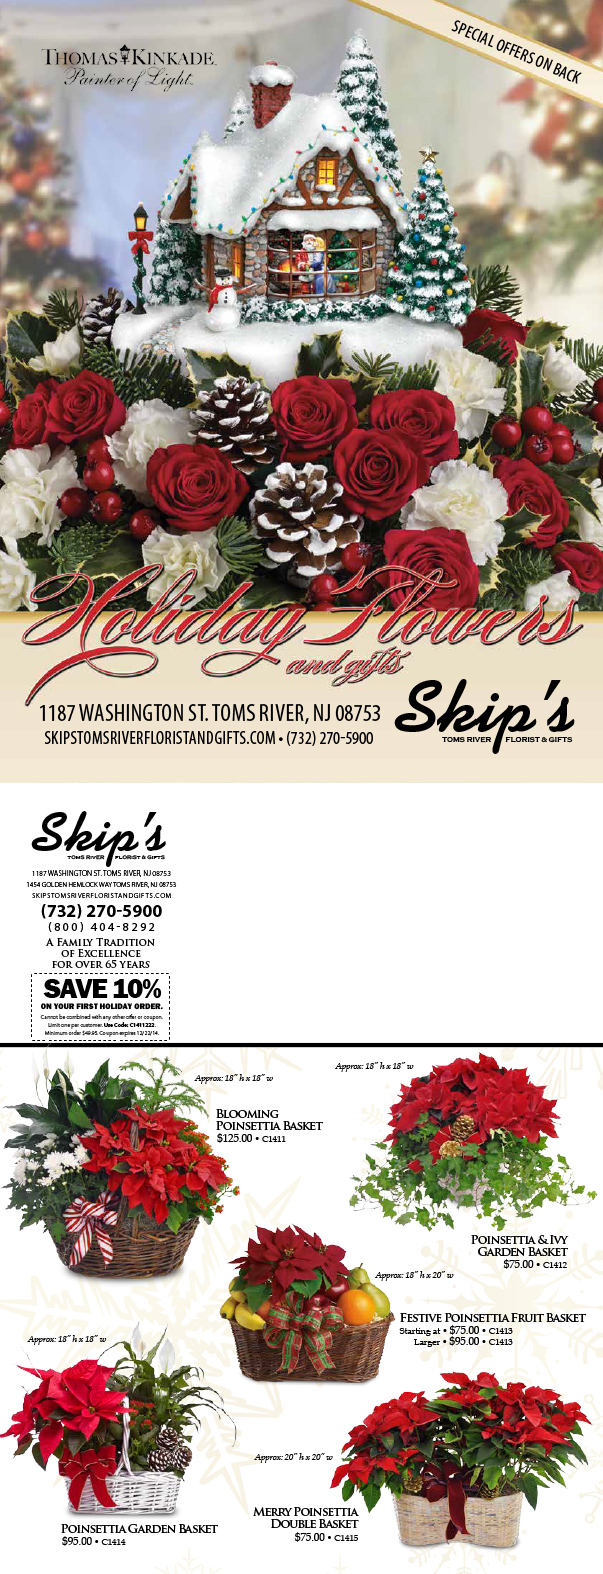 Skips-Holiday-2014-TelefloraVersion-Mailer